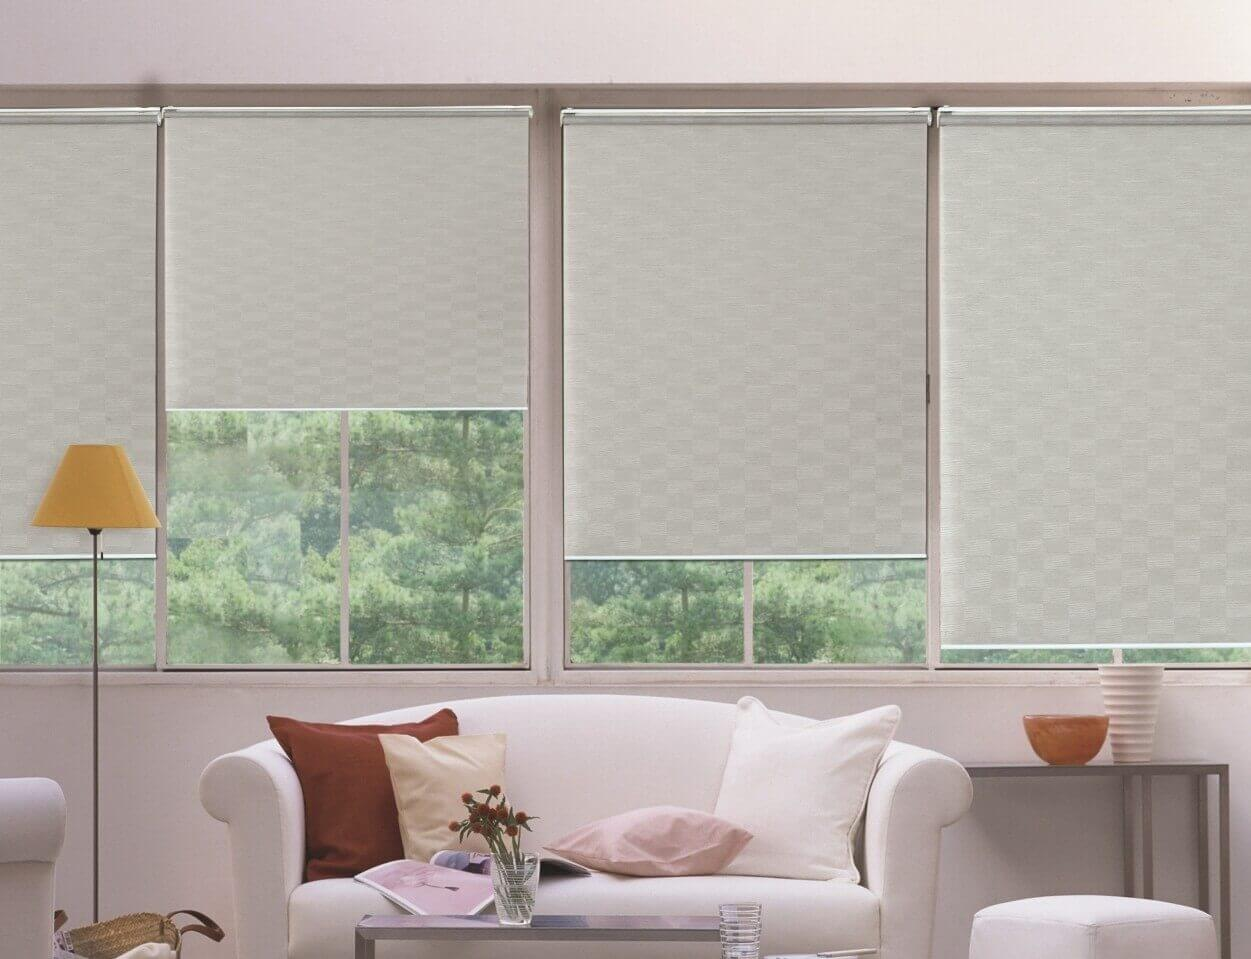 4 Different Kinds Of Quality Fabric Blinds To Install In Your Home